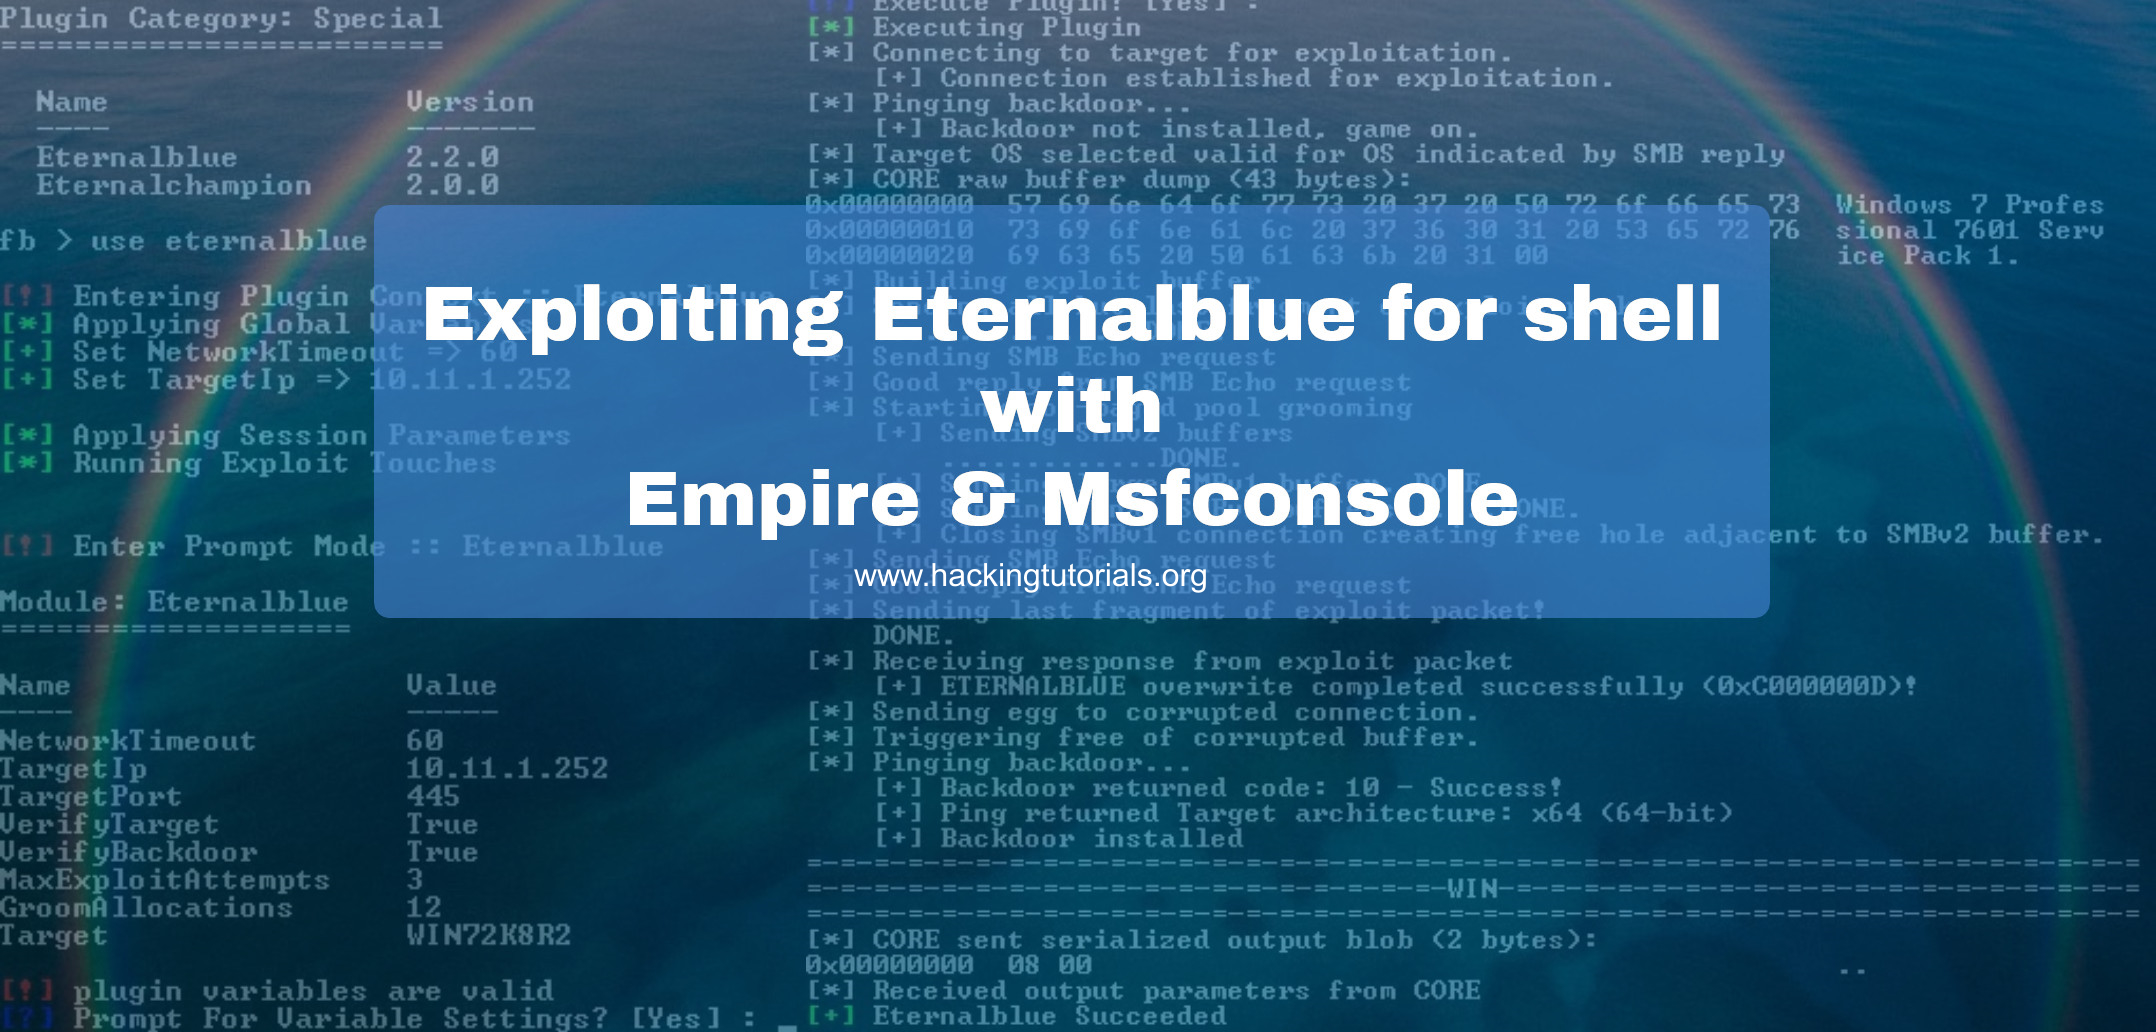 Windows command prompt nmap - Exploiting Eternalblue For Shell With Empire